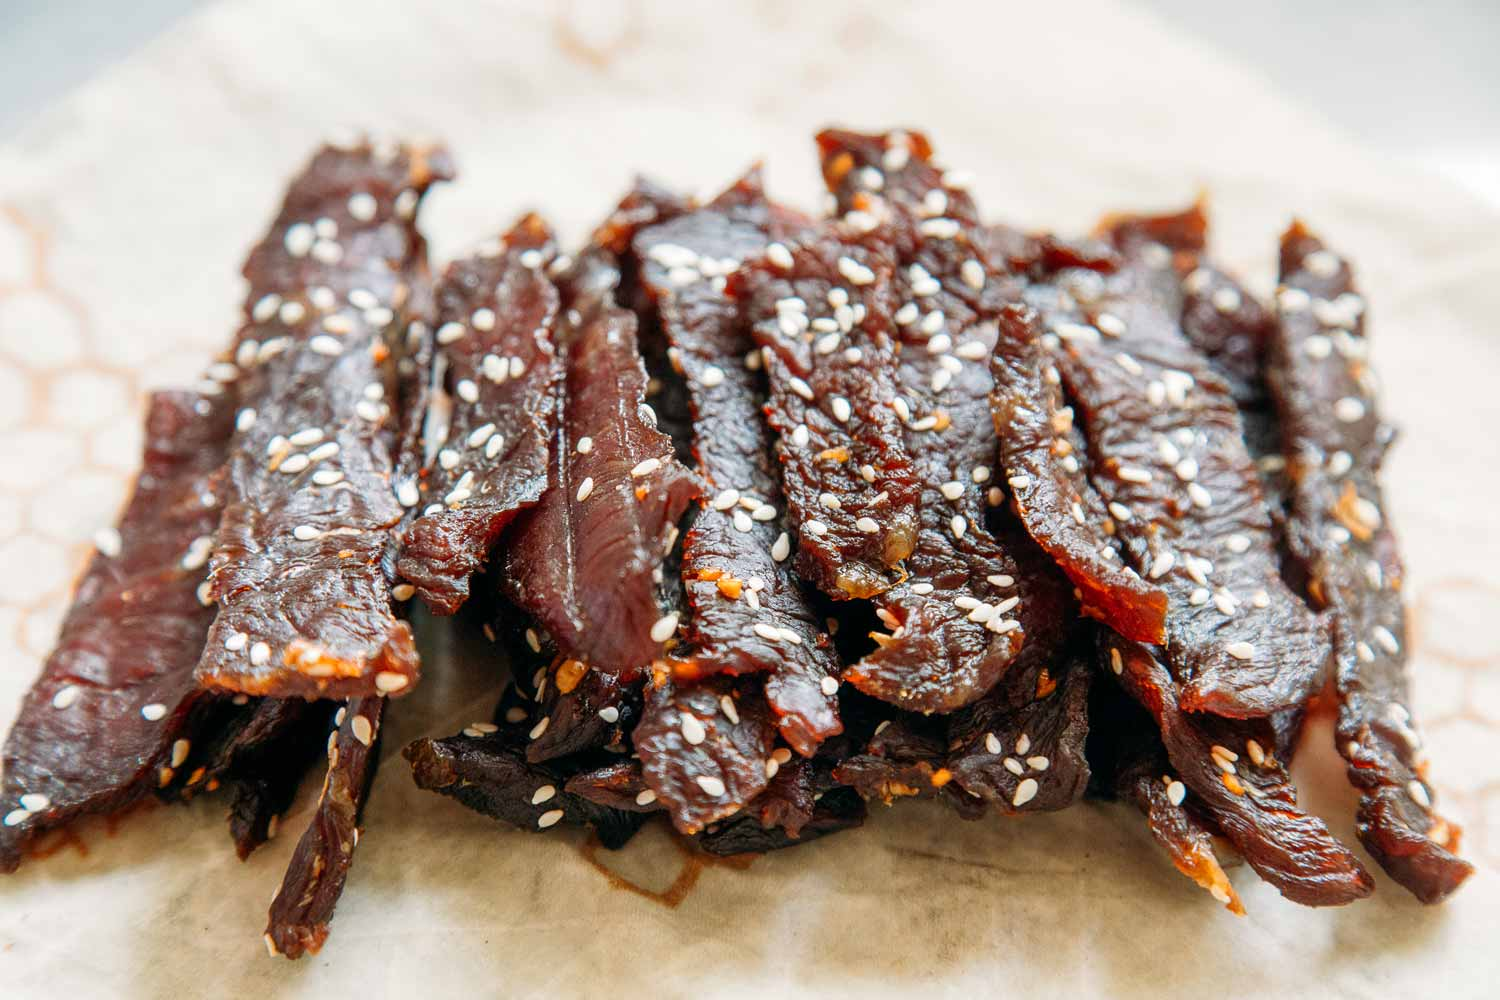 Selecting your premium beef jerky? 3 things to consider when making your purchase!